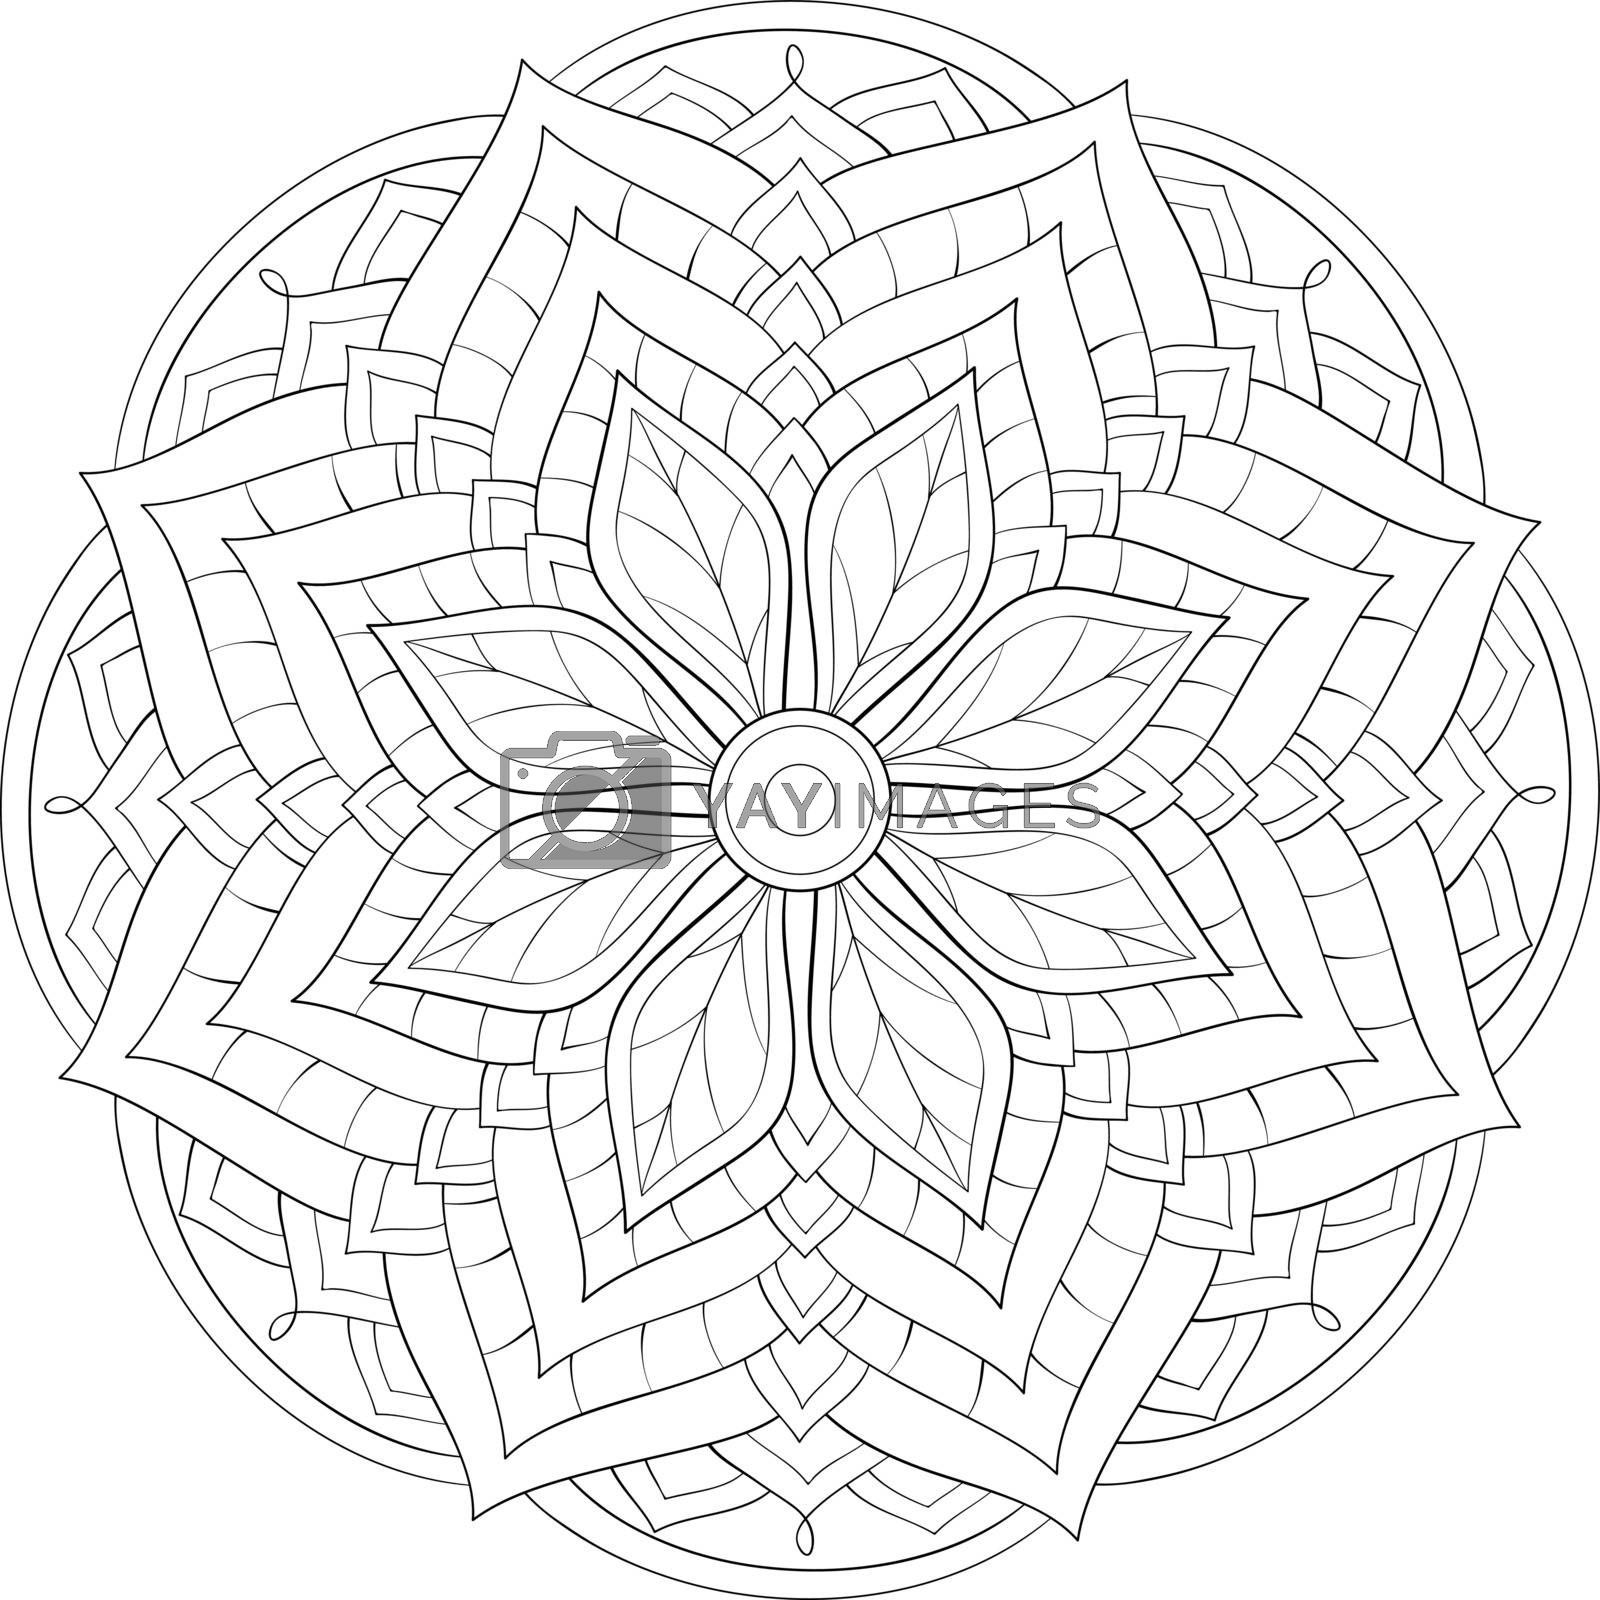 A cute zen mandala with ornaments image for relaxing activity.A coloring book,page for adults.Poster design.